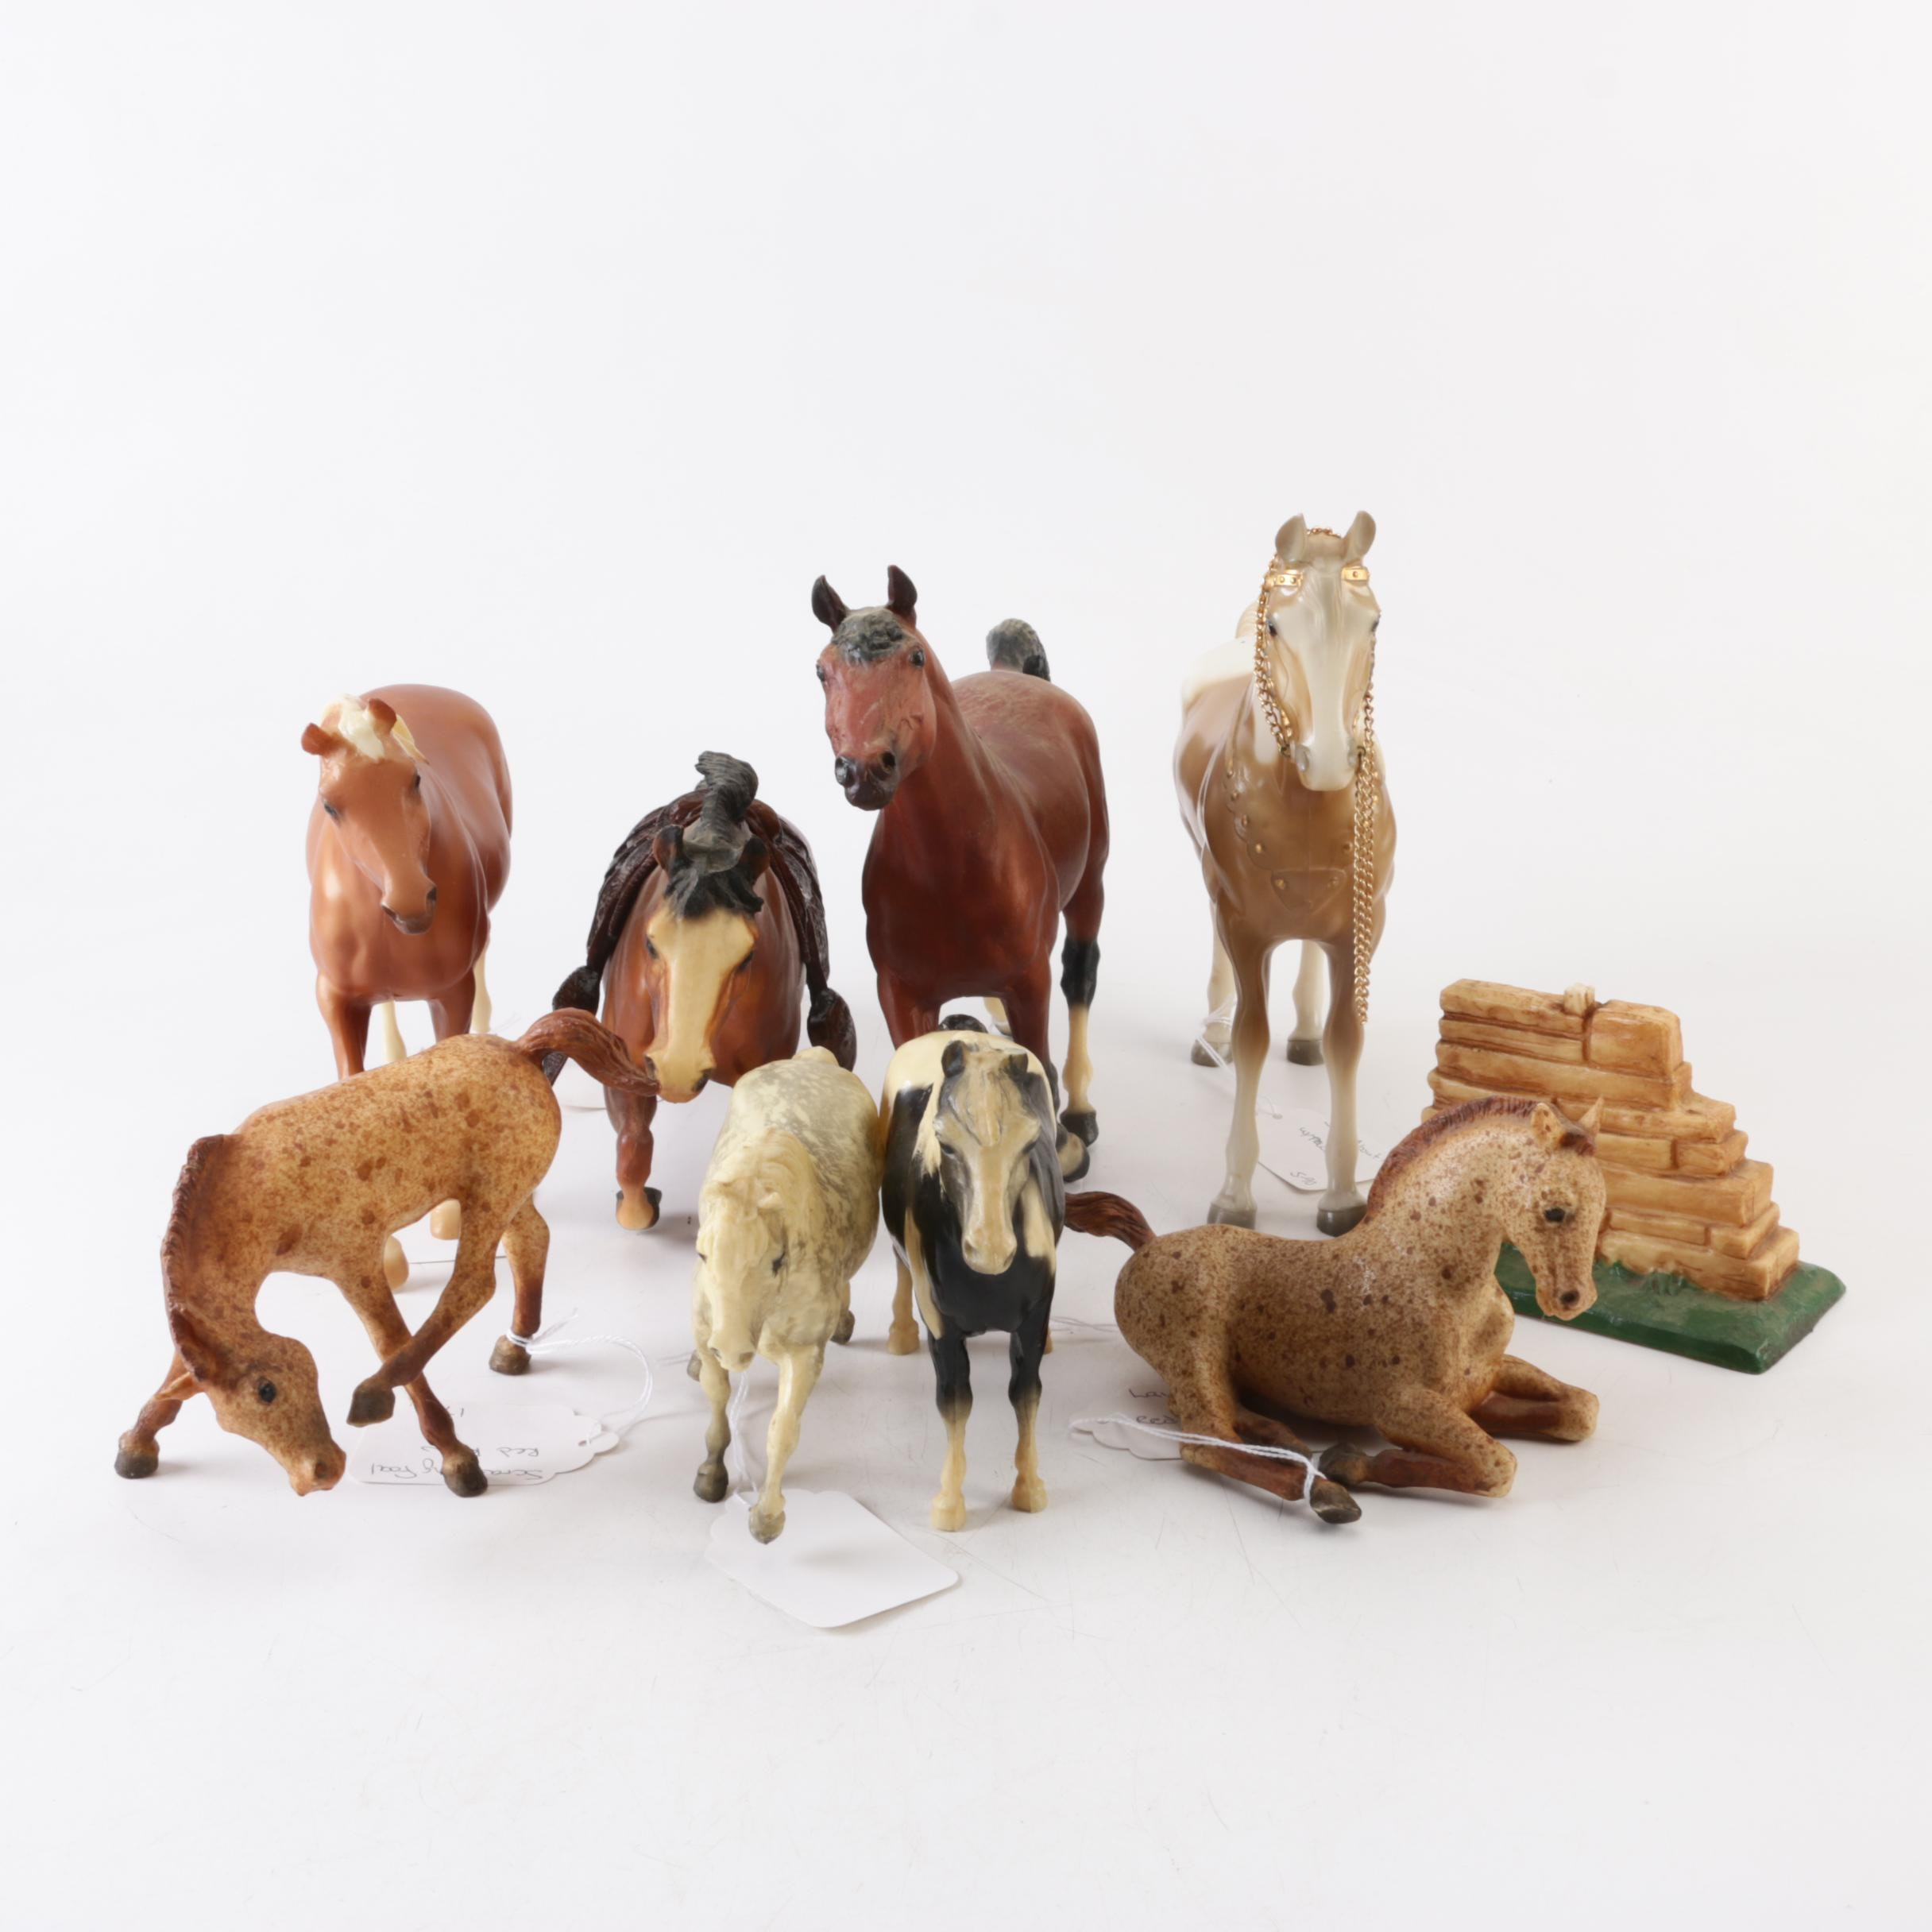 Horse Figurines Including Morgan Bay, Jumper, and Red Roan